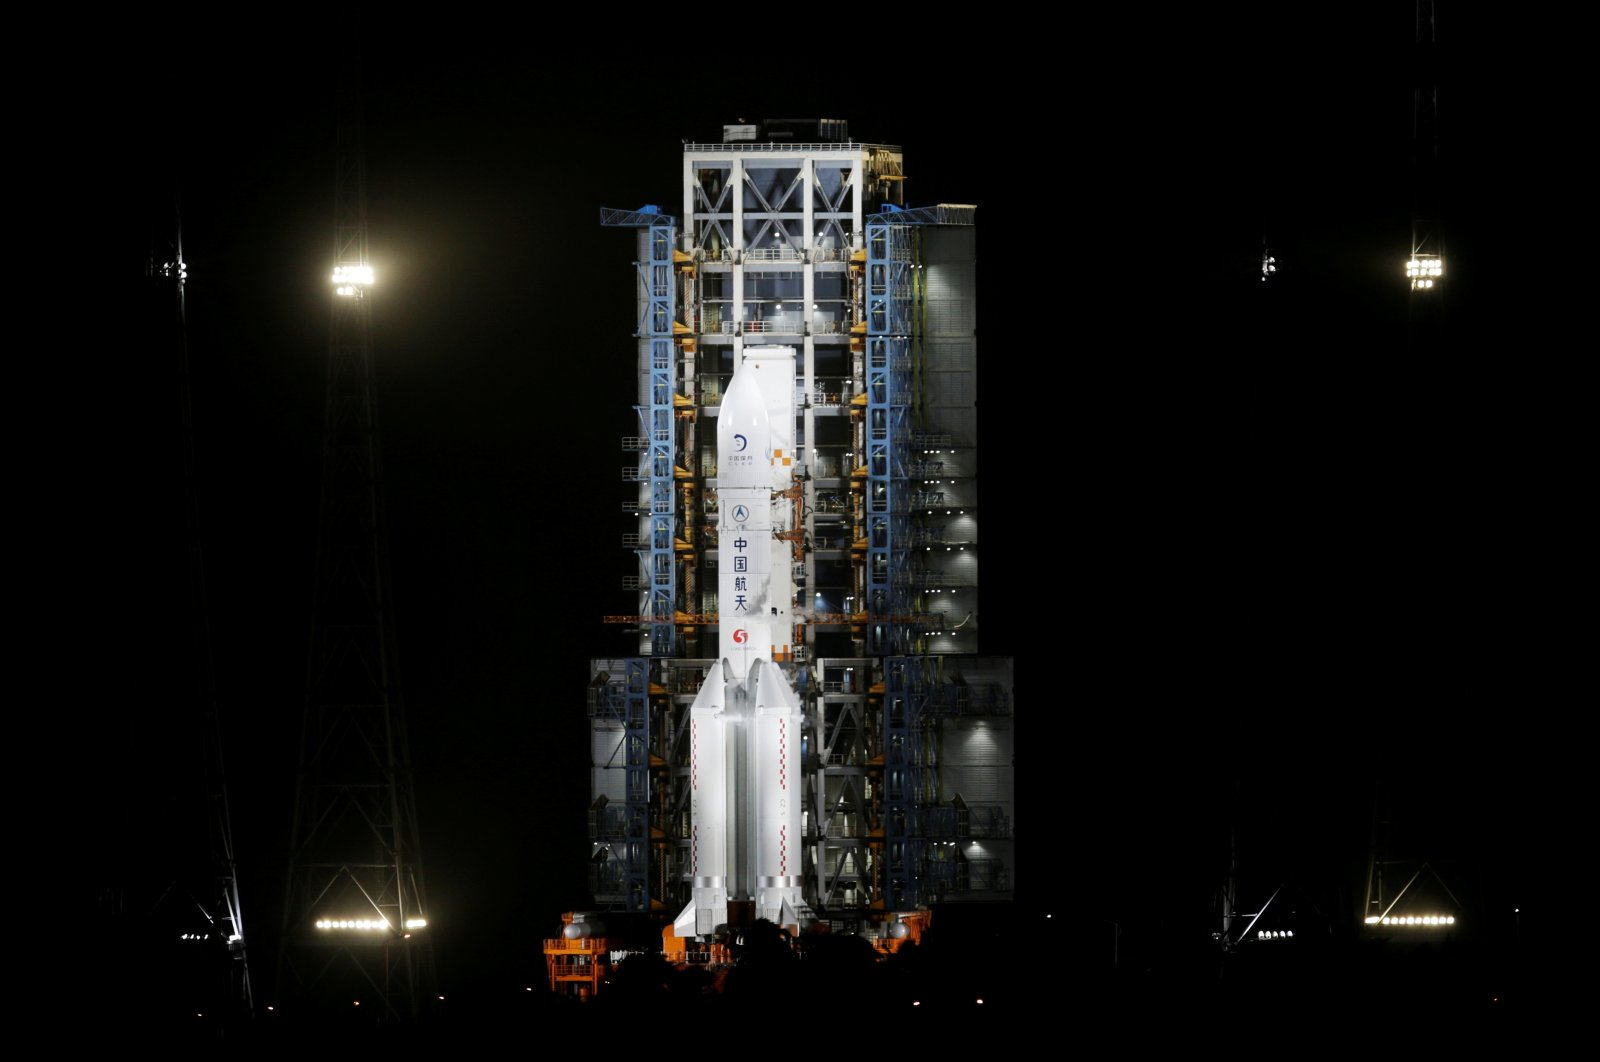 The Long March-5 Y5 rocket, carrying the Chang'e-5 lunar probe, is seen before taking off from Wenchang Space Launch Center, in Wenchang, Hainan province, China, Nov. 24, 2020. (Reuters Photo)